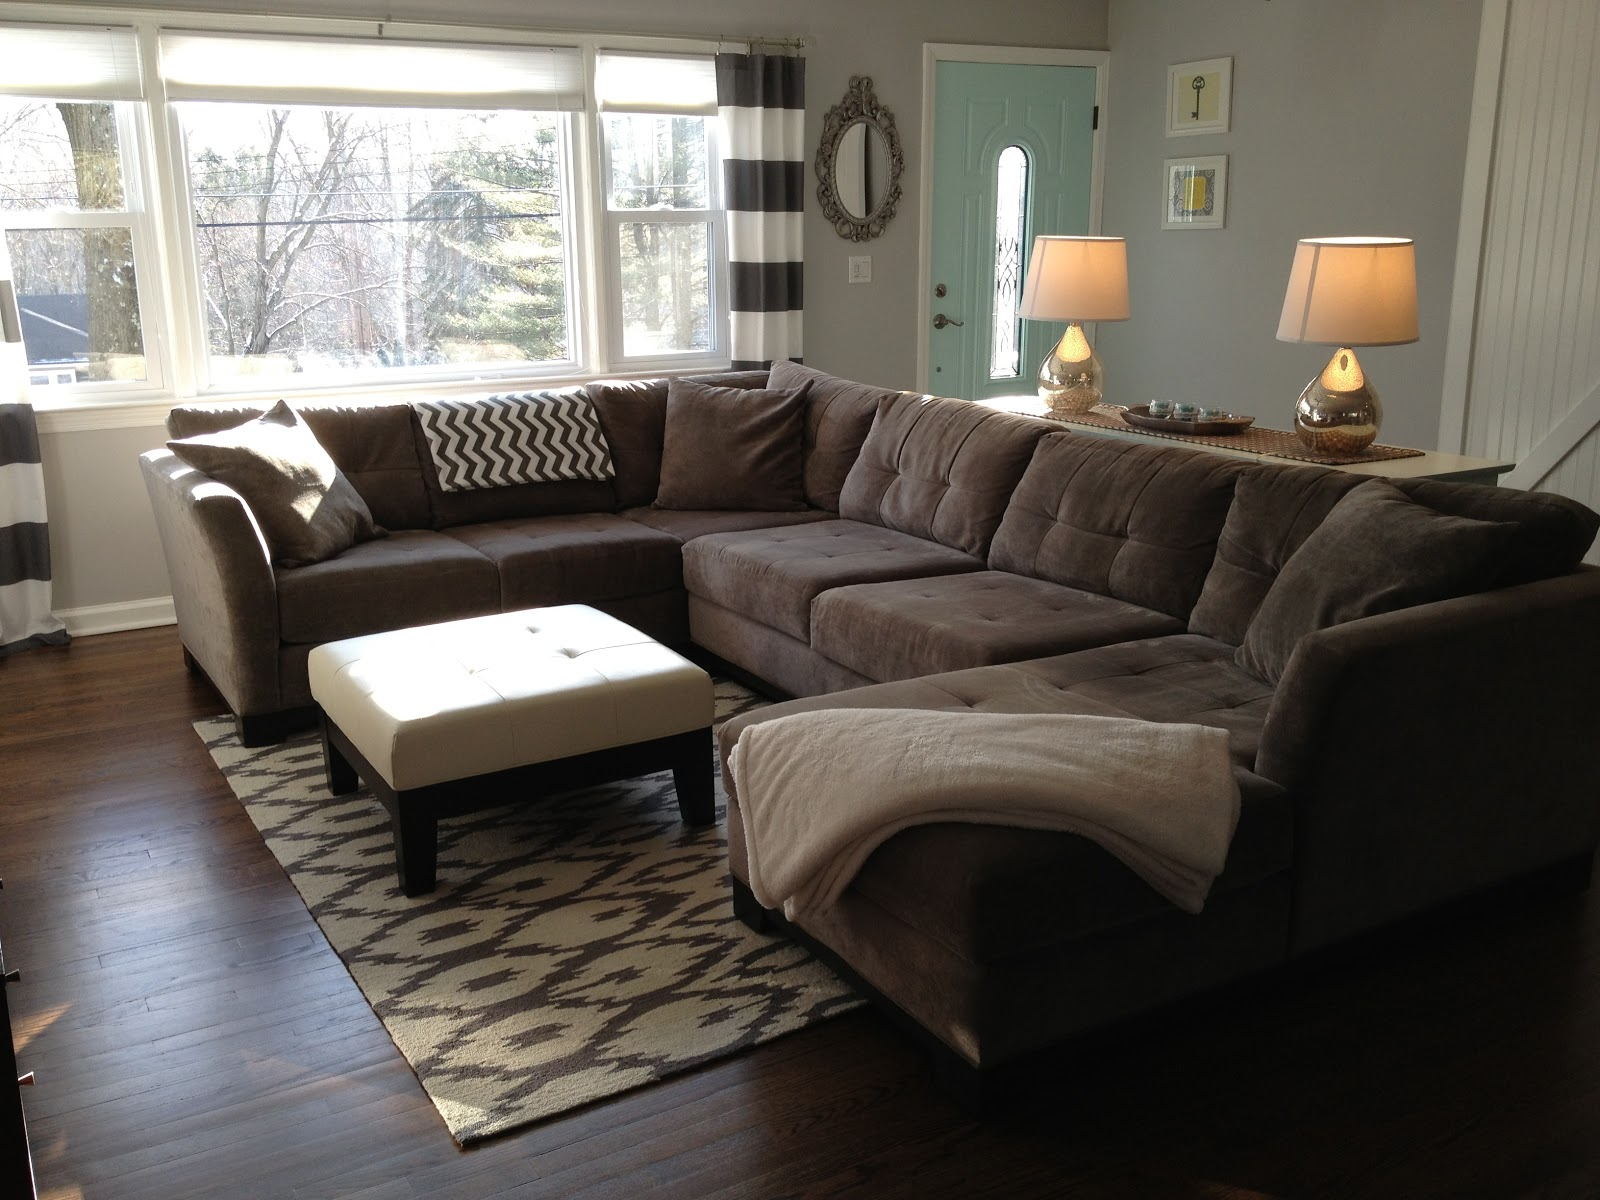 Retro ranch reno rugs revealed for Living room layout with sectional